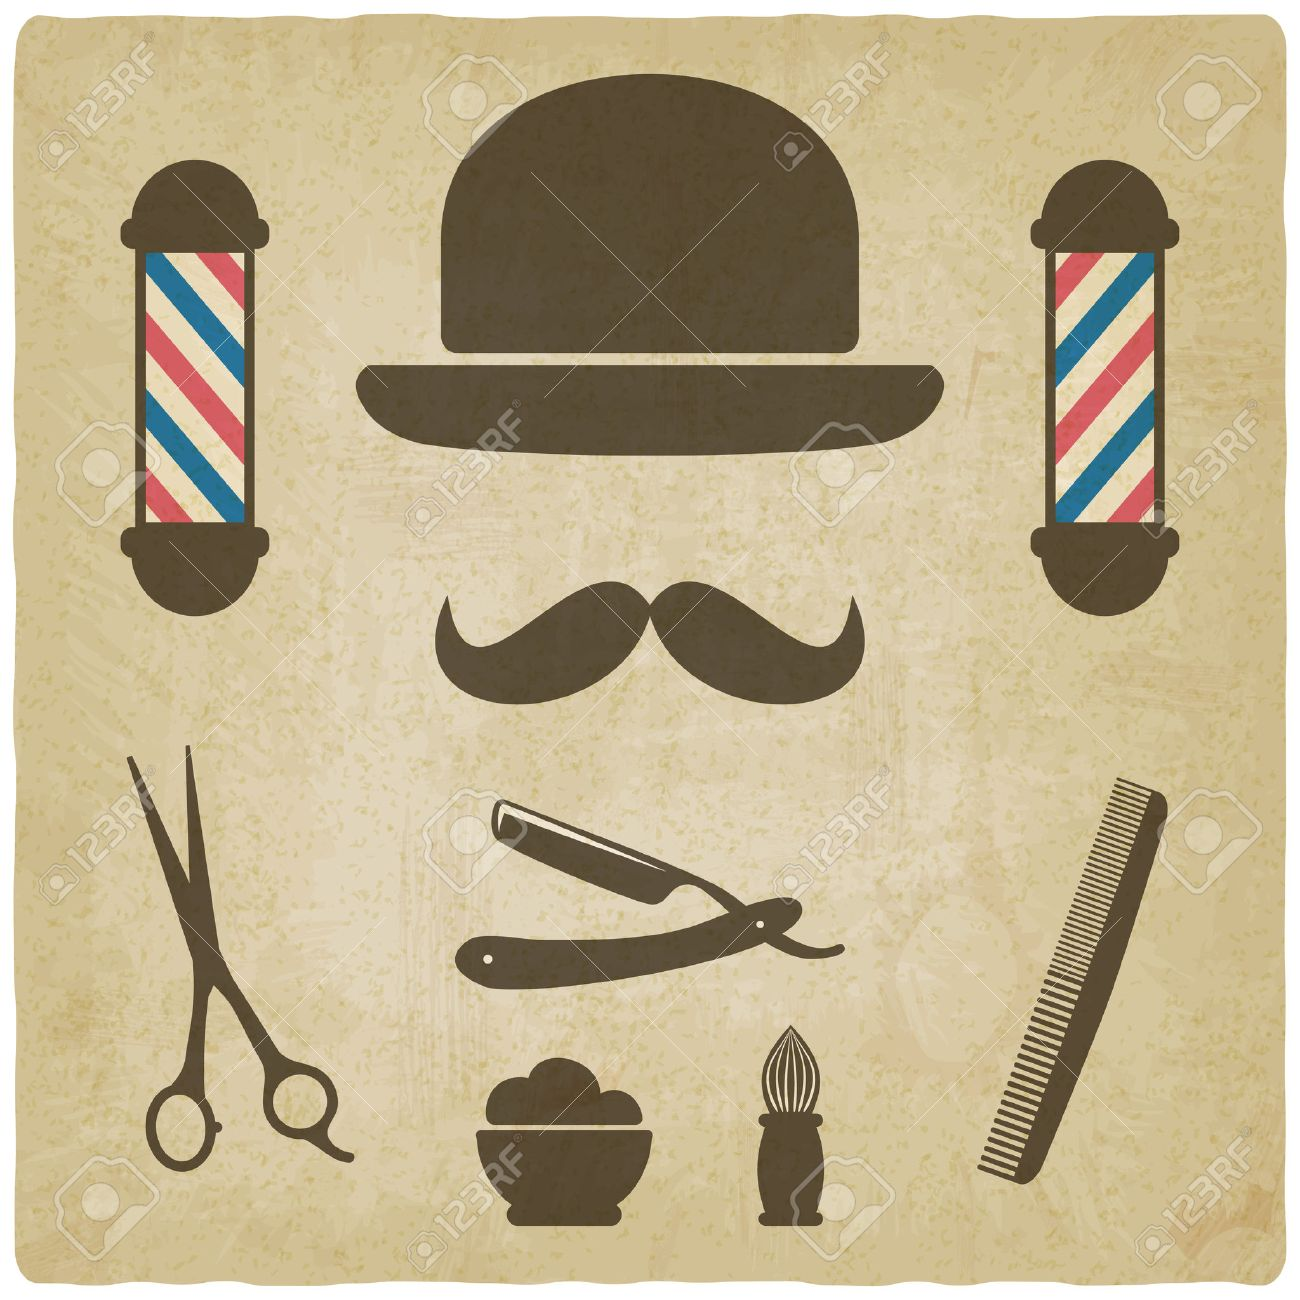 barber old background Stock Vector - 27786709